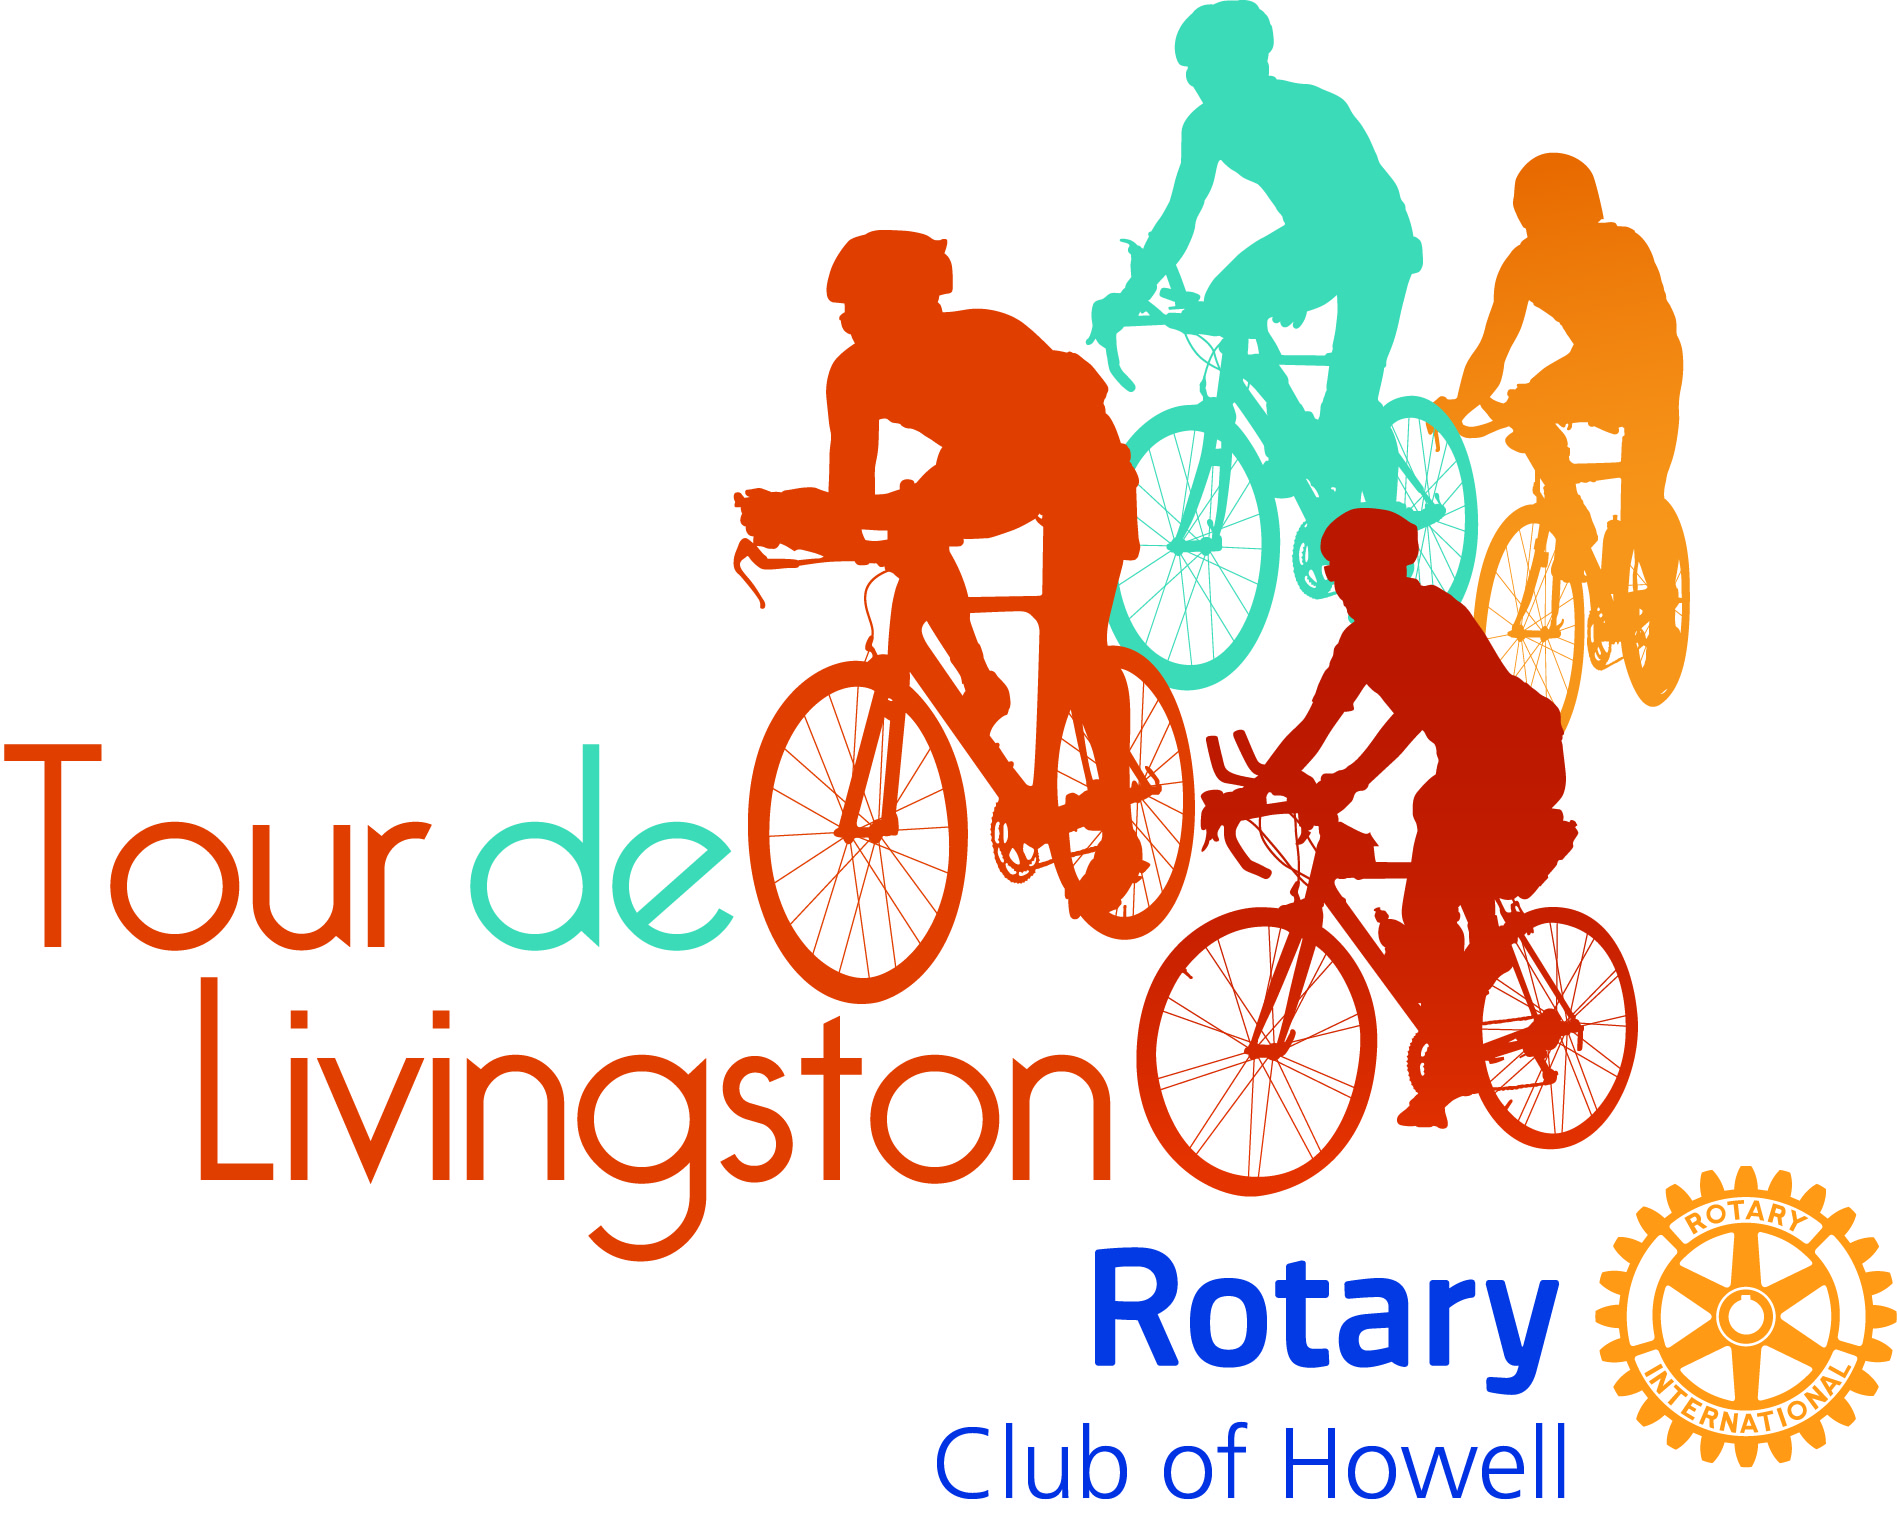 Tour de Livingston 2017 logo